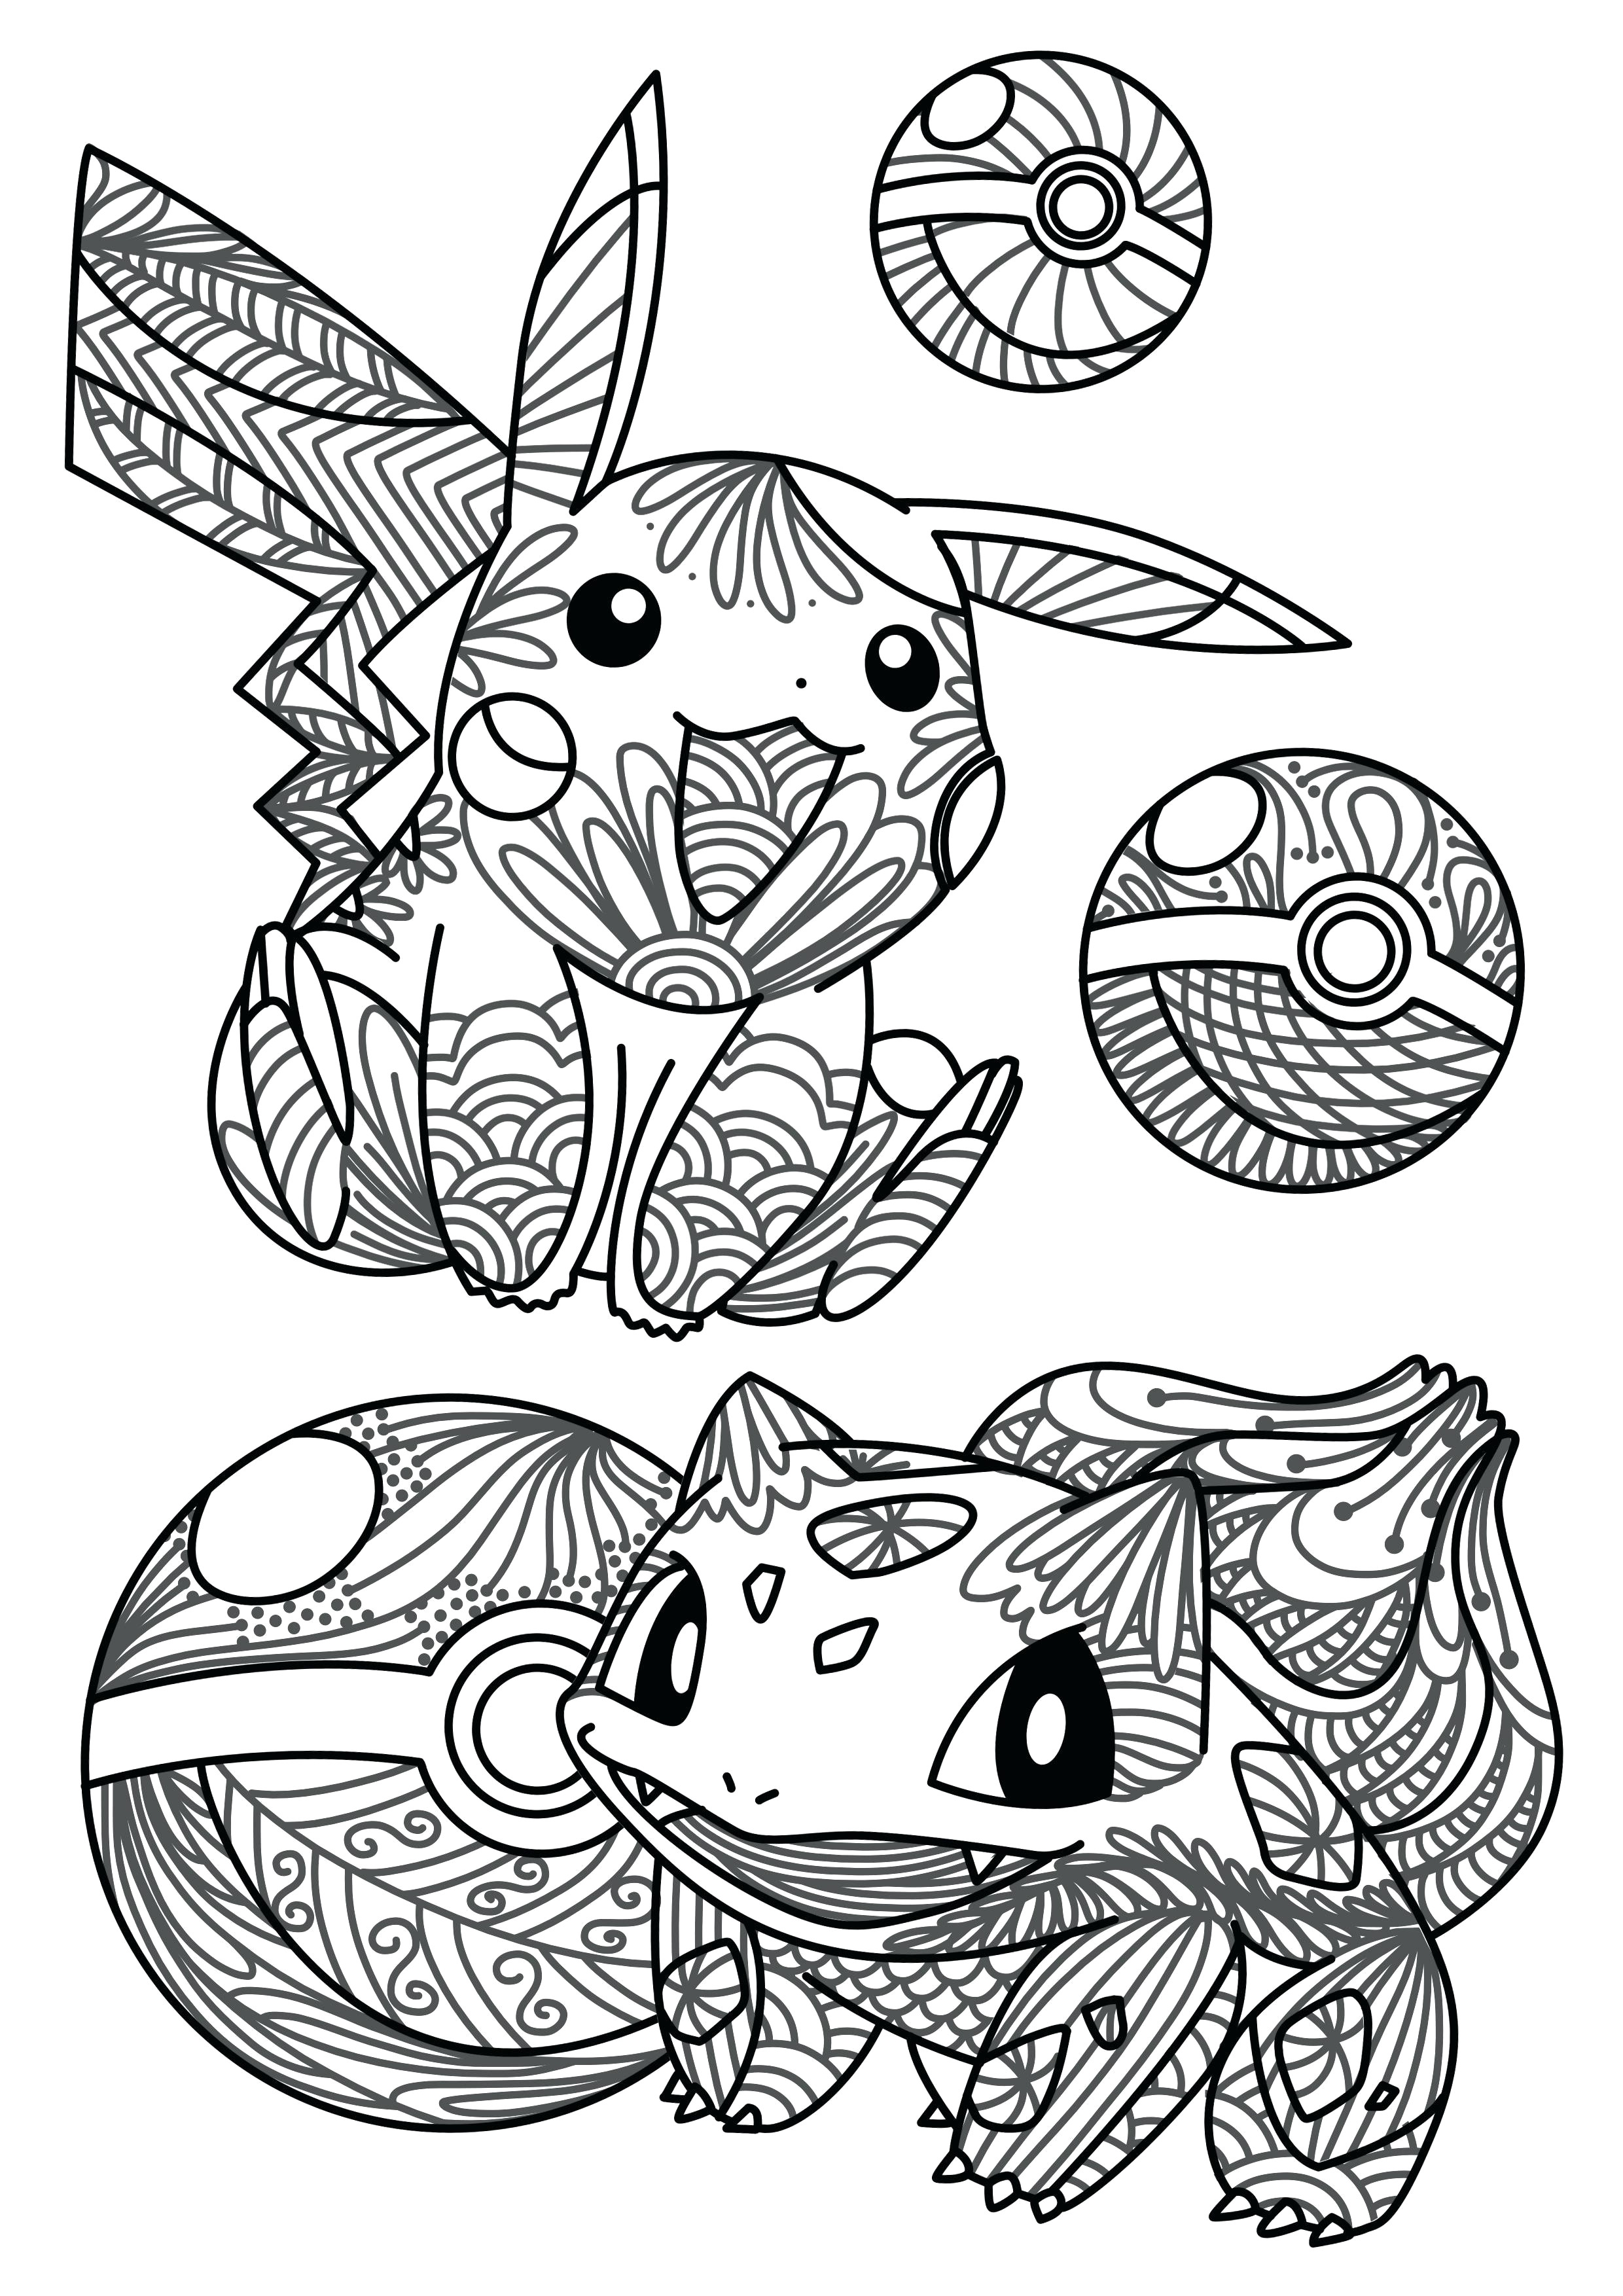 Christmas Card Colouring Pages With Best Pokemon Coloring In Humorous Fresh Cute